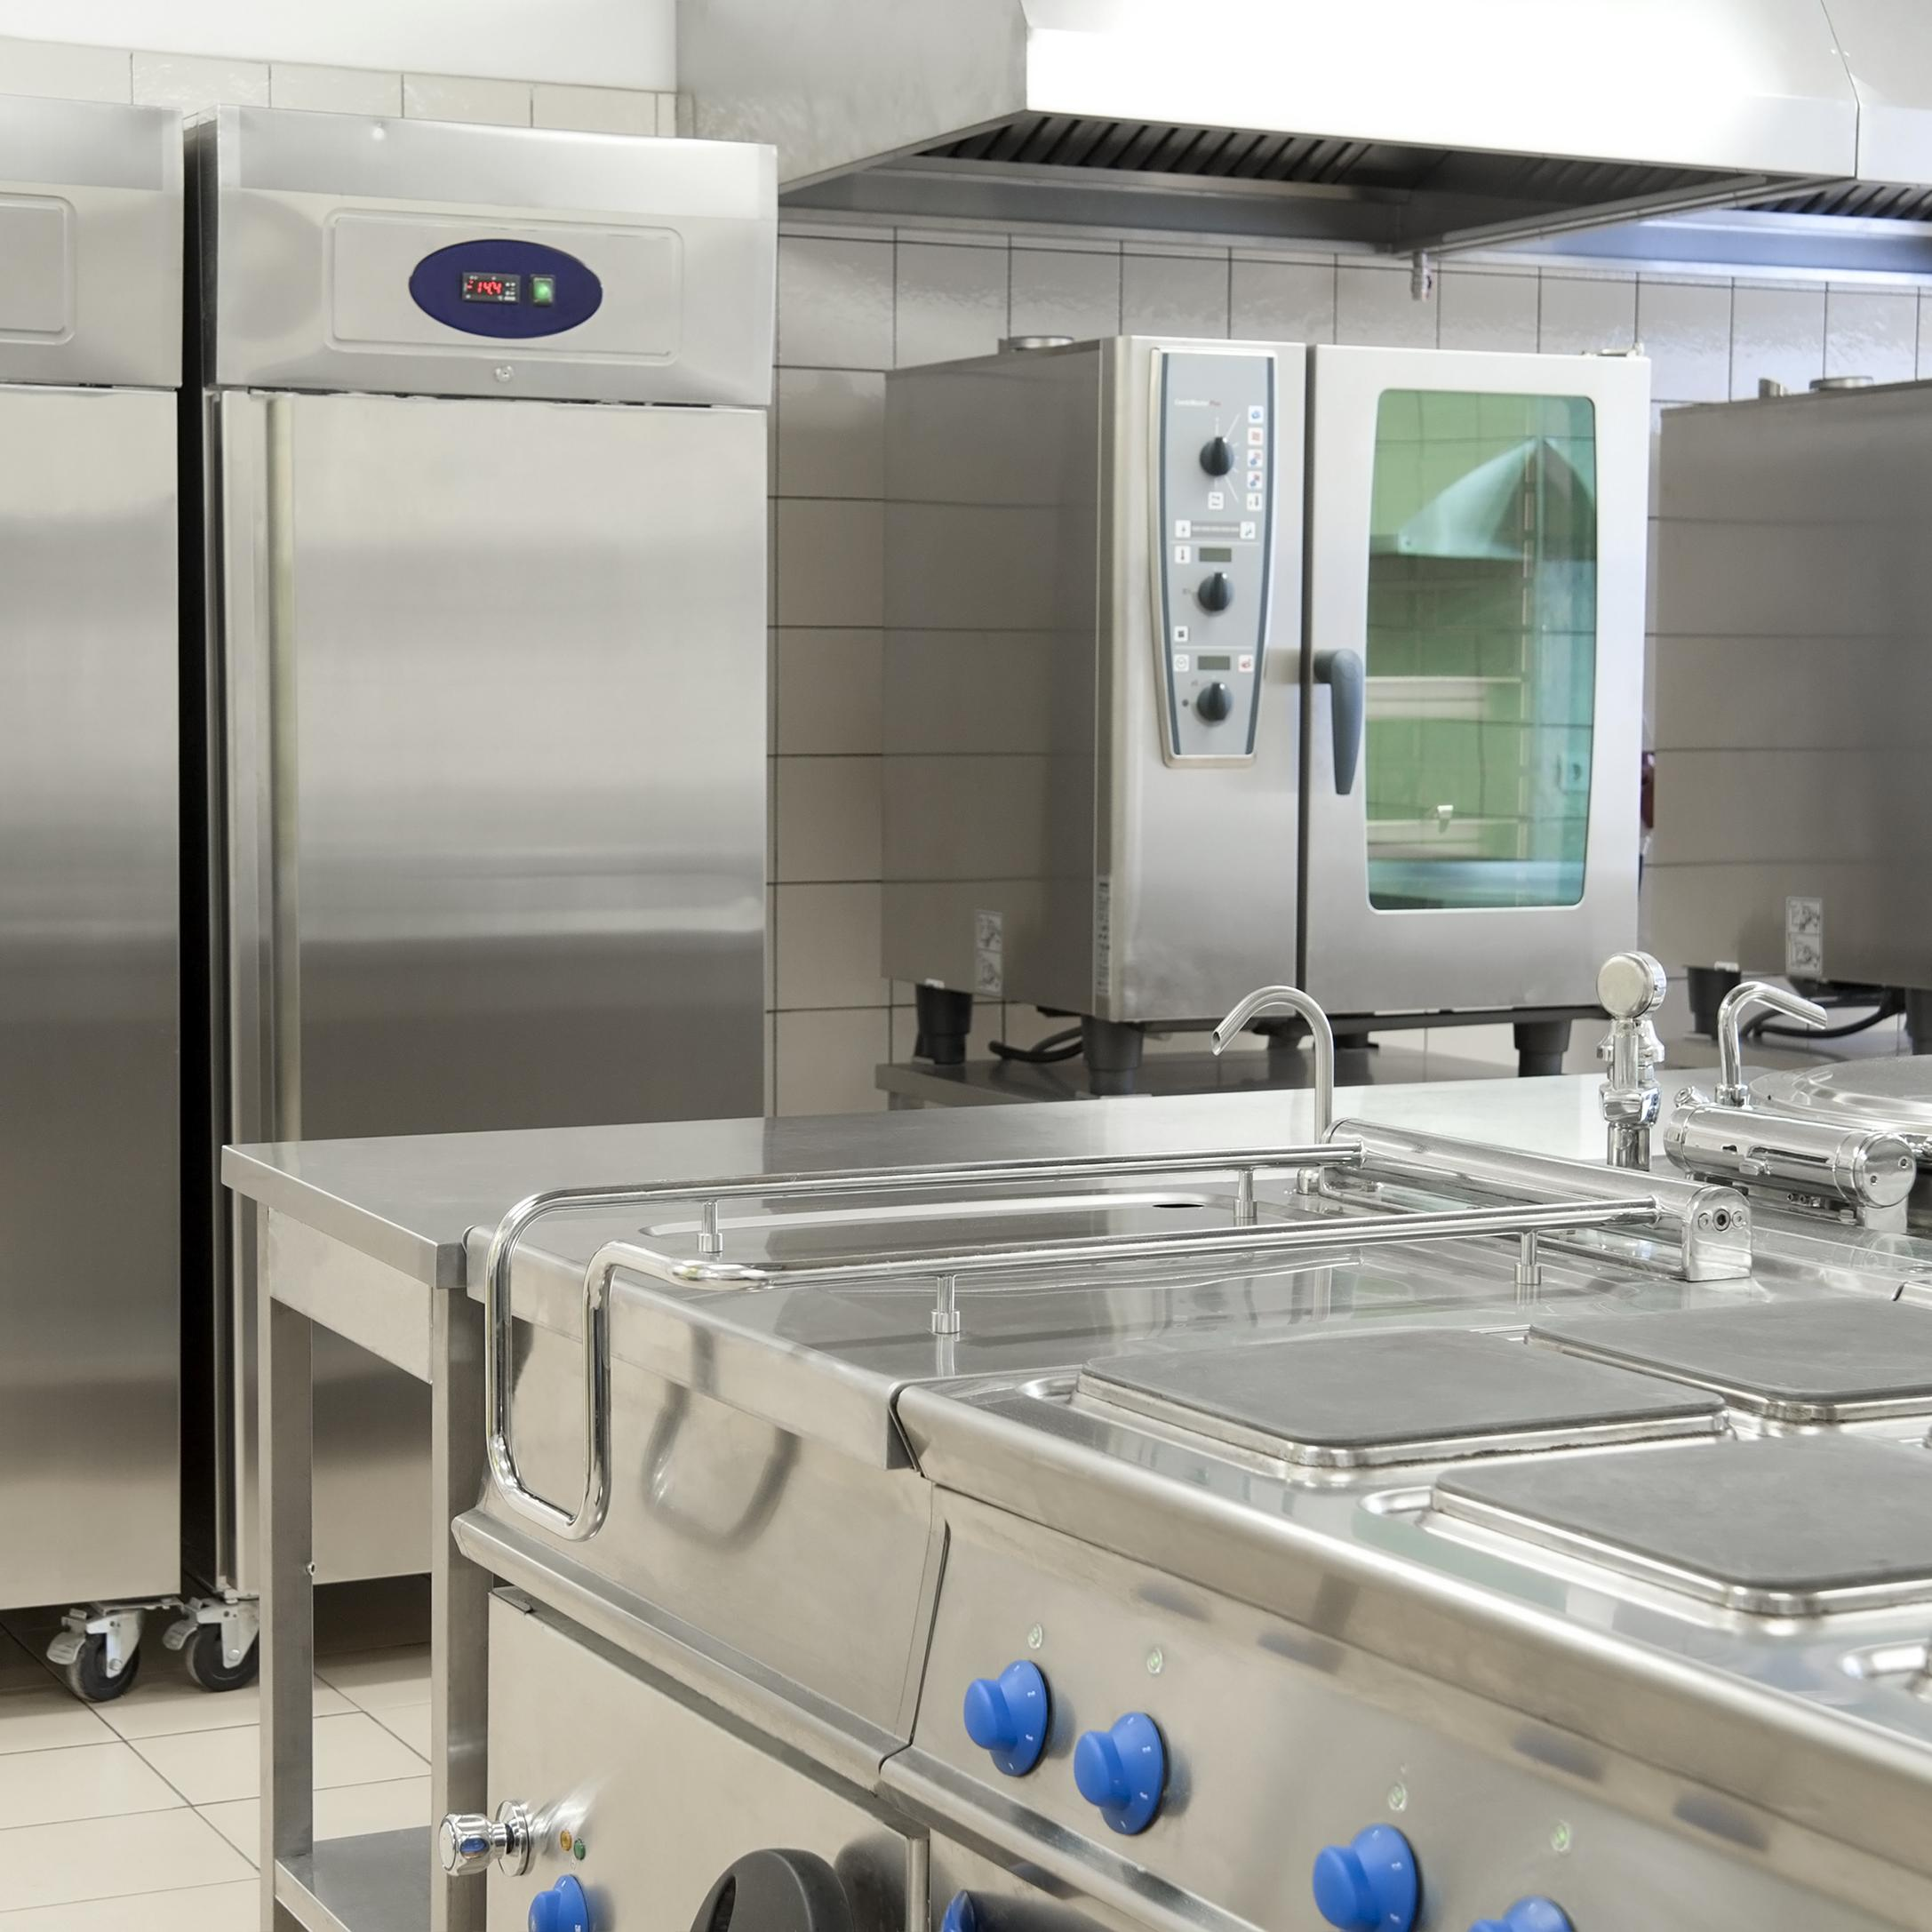 Restaurant kitchen appliances.